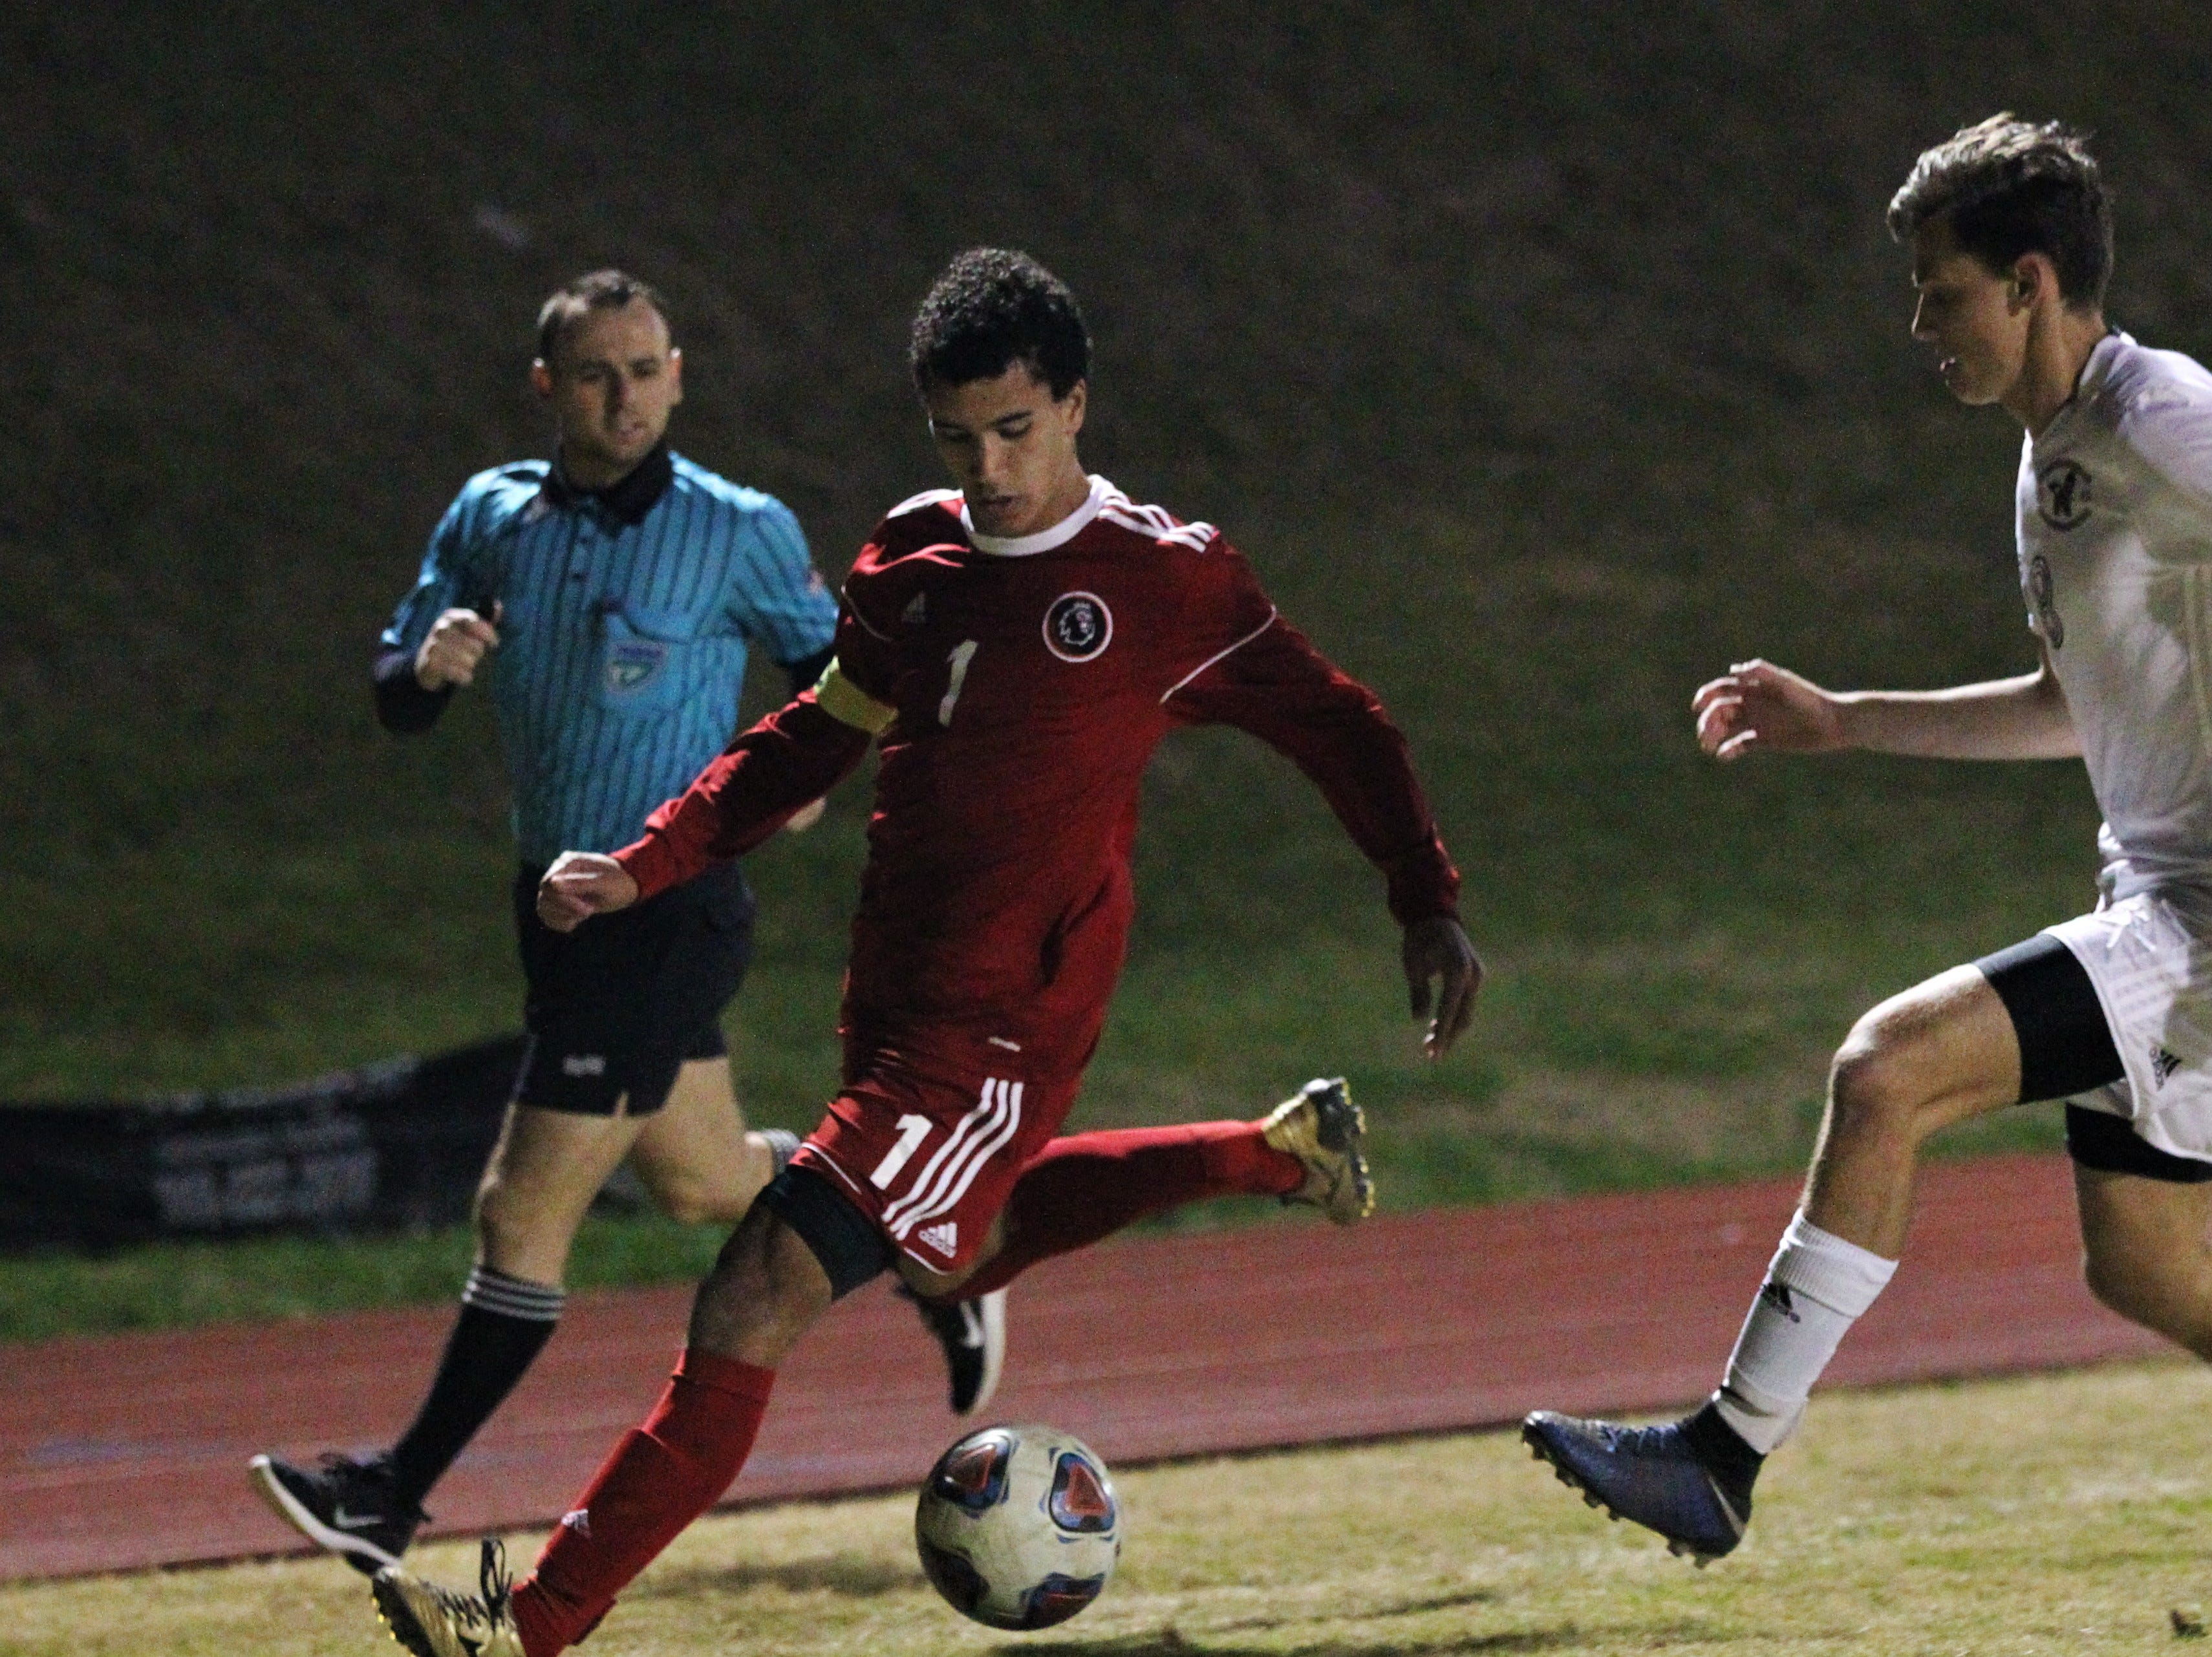 Leon's Sy Fontenot races down the line as the Lions' boys soccer team beat Niceville 1-0 in a Region 1-4A semifinal on Feb. 9, 2019.